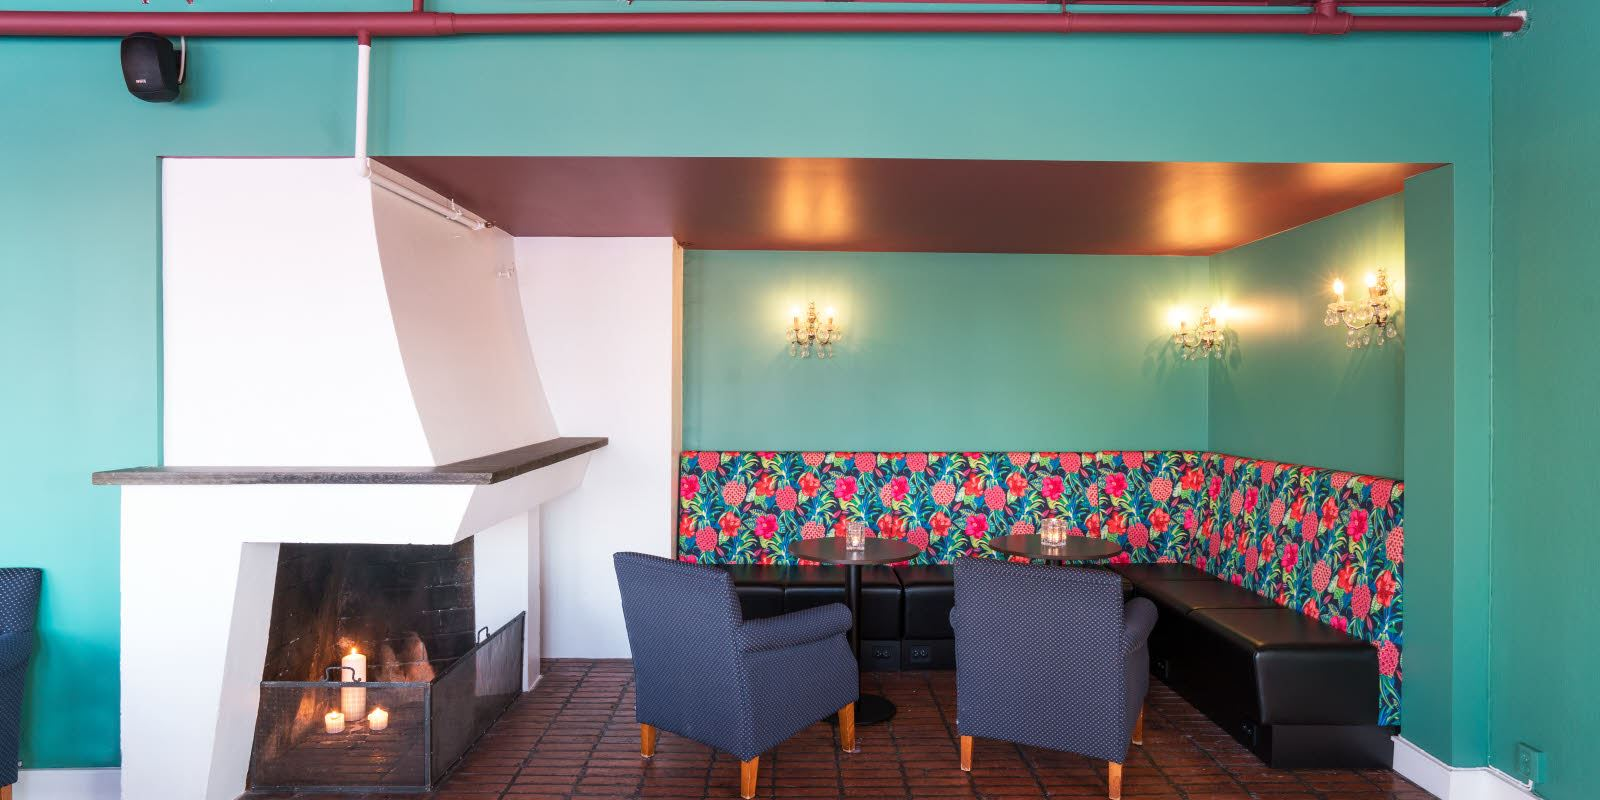 Lounge bar with fireplace and seating corner, patterned wallpaper above the seating area and turquoise walls at Thon Hotel Skeikampen